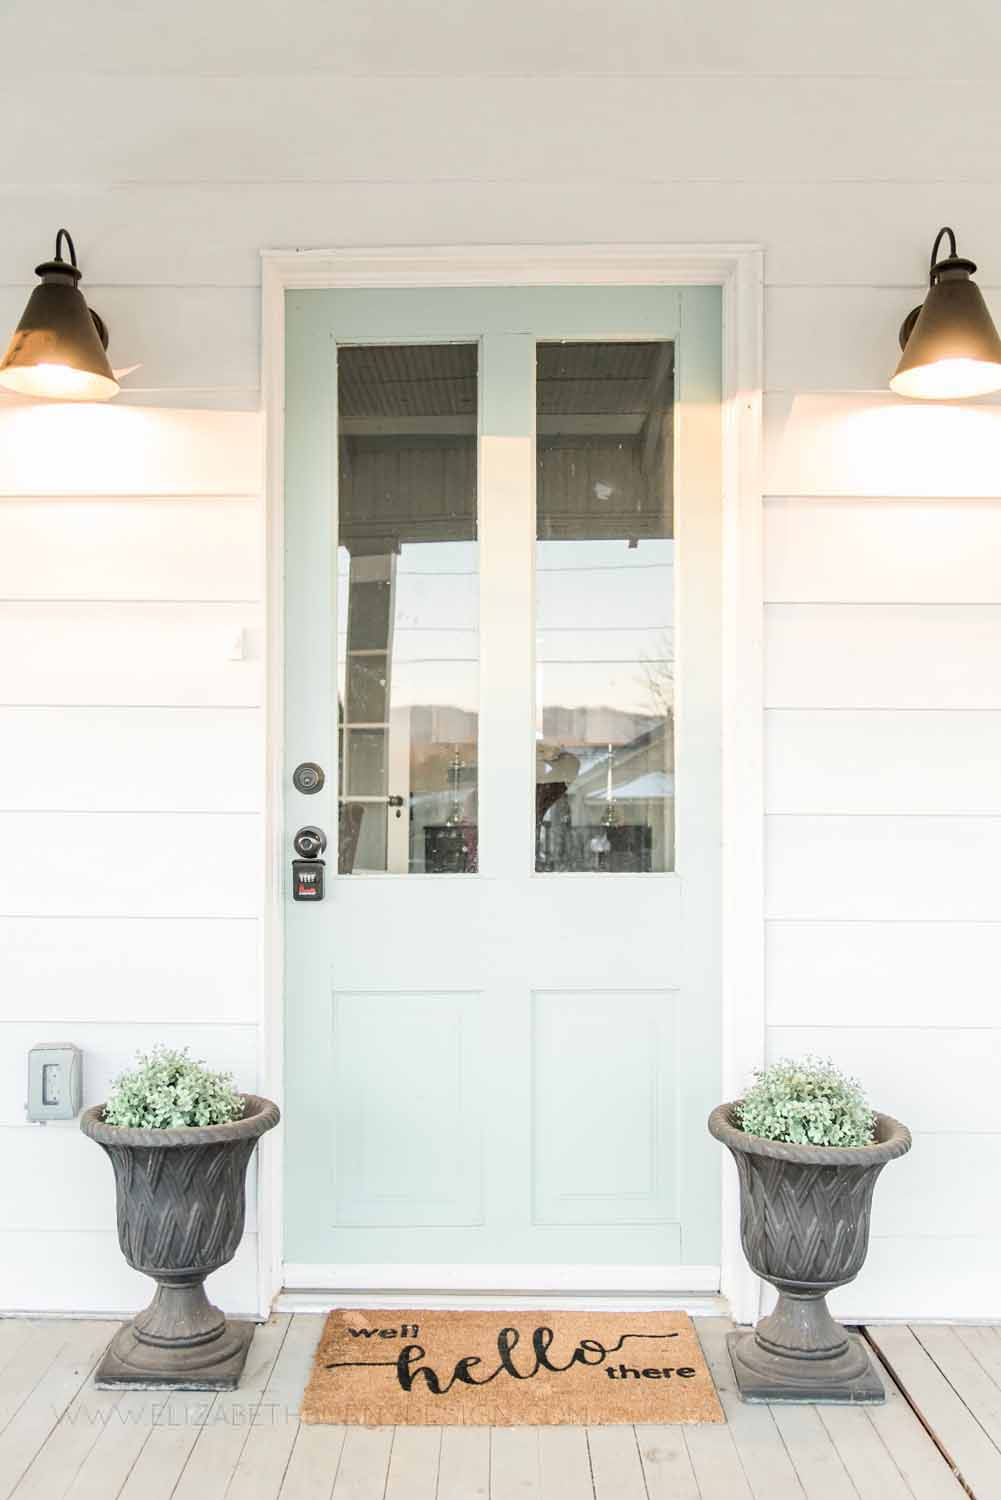 Elizabeth Burns Design Raleigh Interior Designer  Farmhouse Fixer Upper Cottage Renovation, Benjamin Moore Wythe Blue Front Door Front Porch Curb Appeal (4).jpg